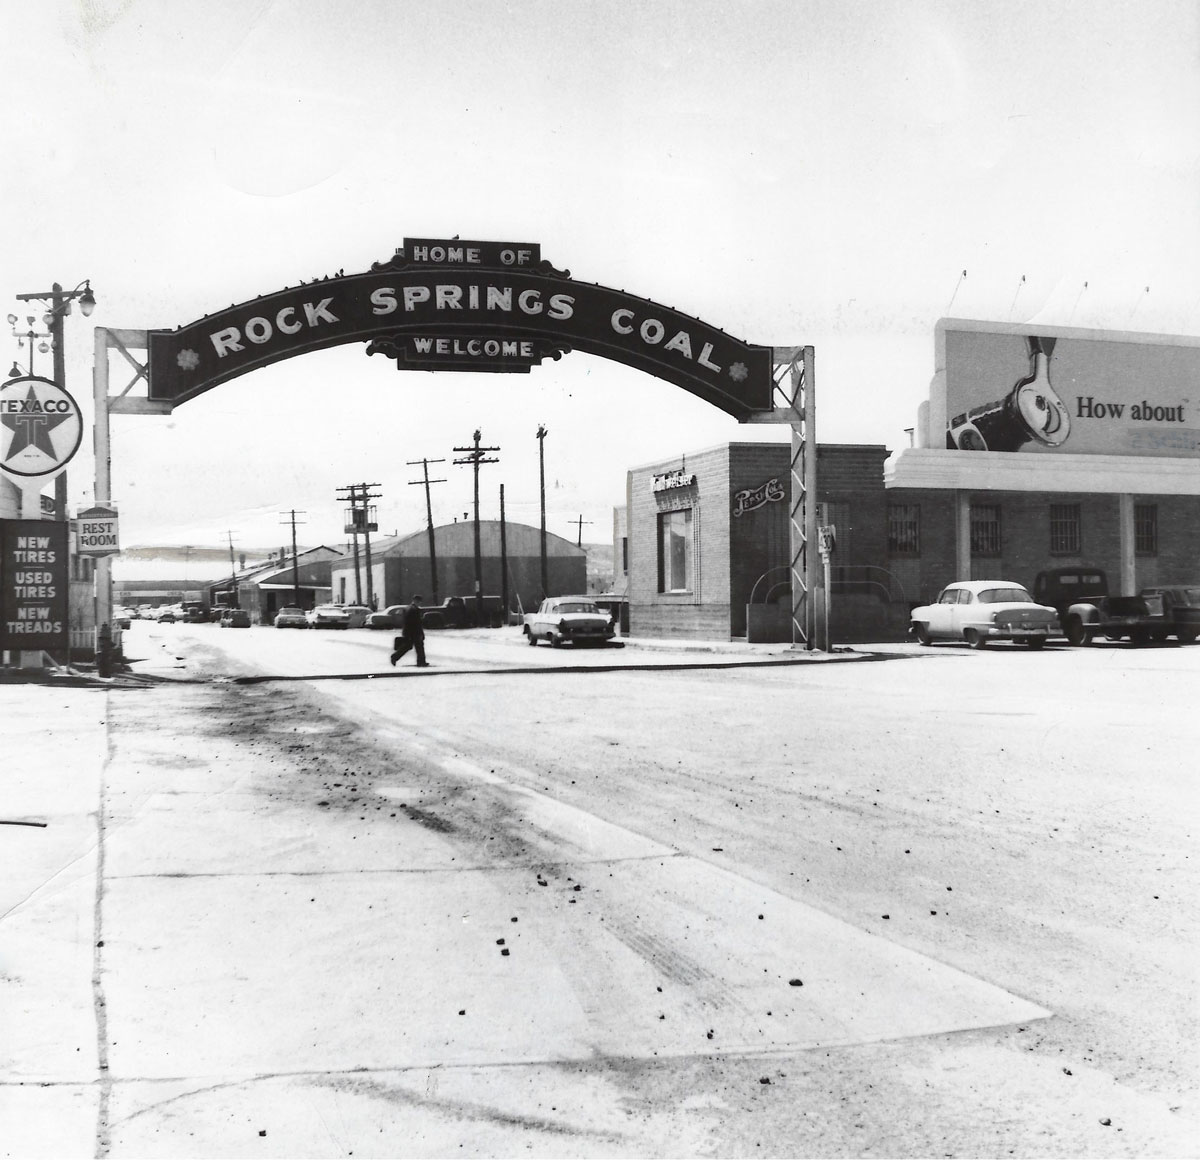 From 1929 and Into the Future: The History of the Rock Springs Coal Arch (Part 4)